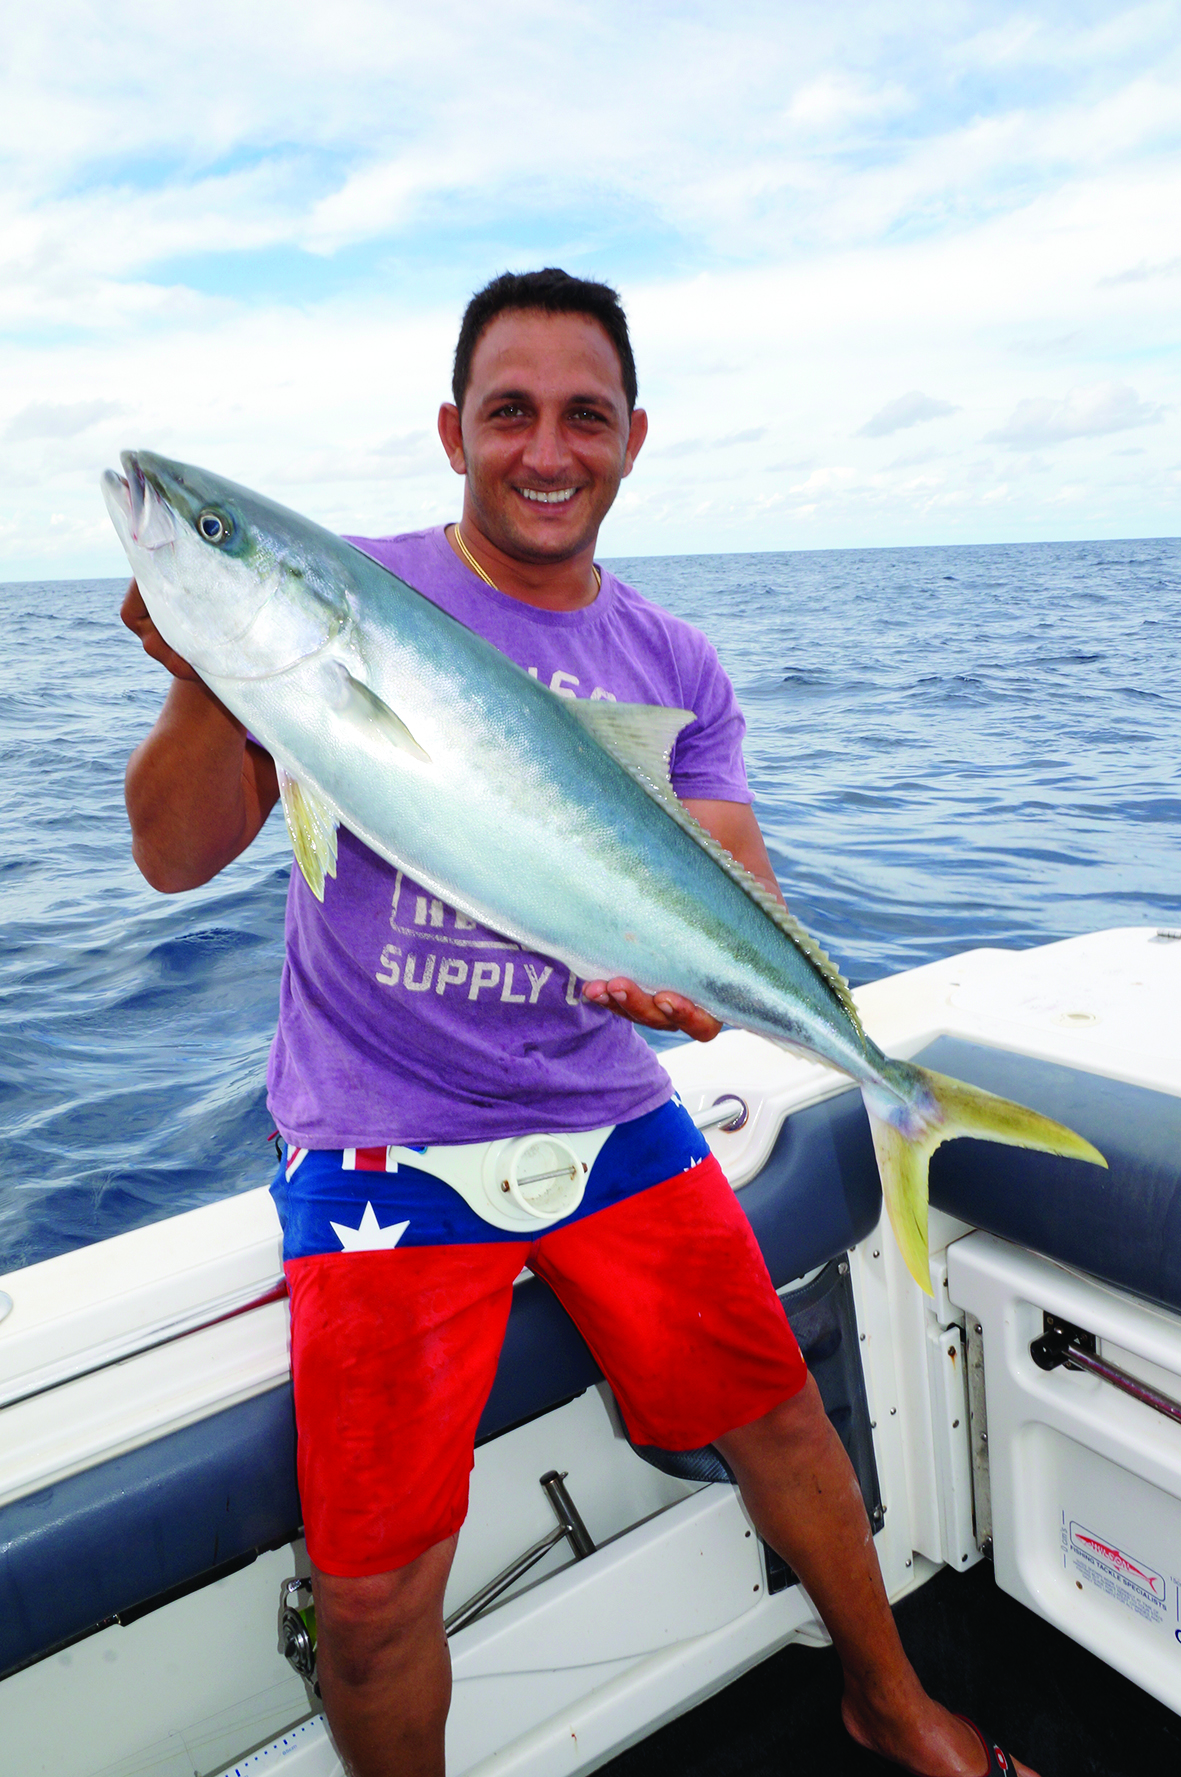 Tarek was all smiles after landing kings of this calibre.